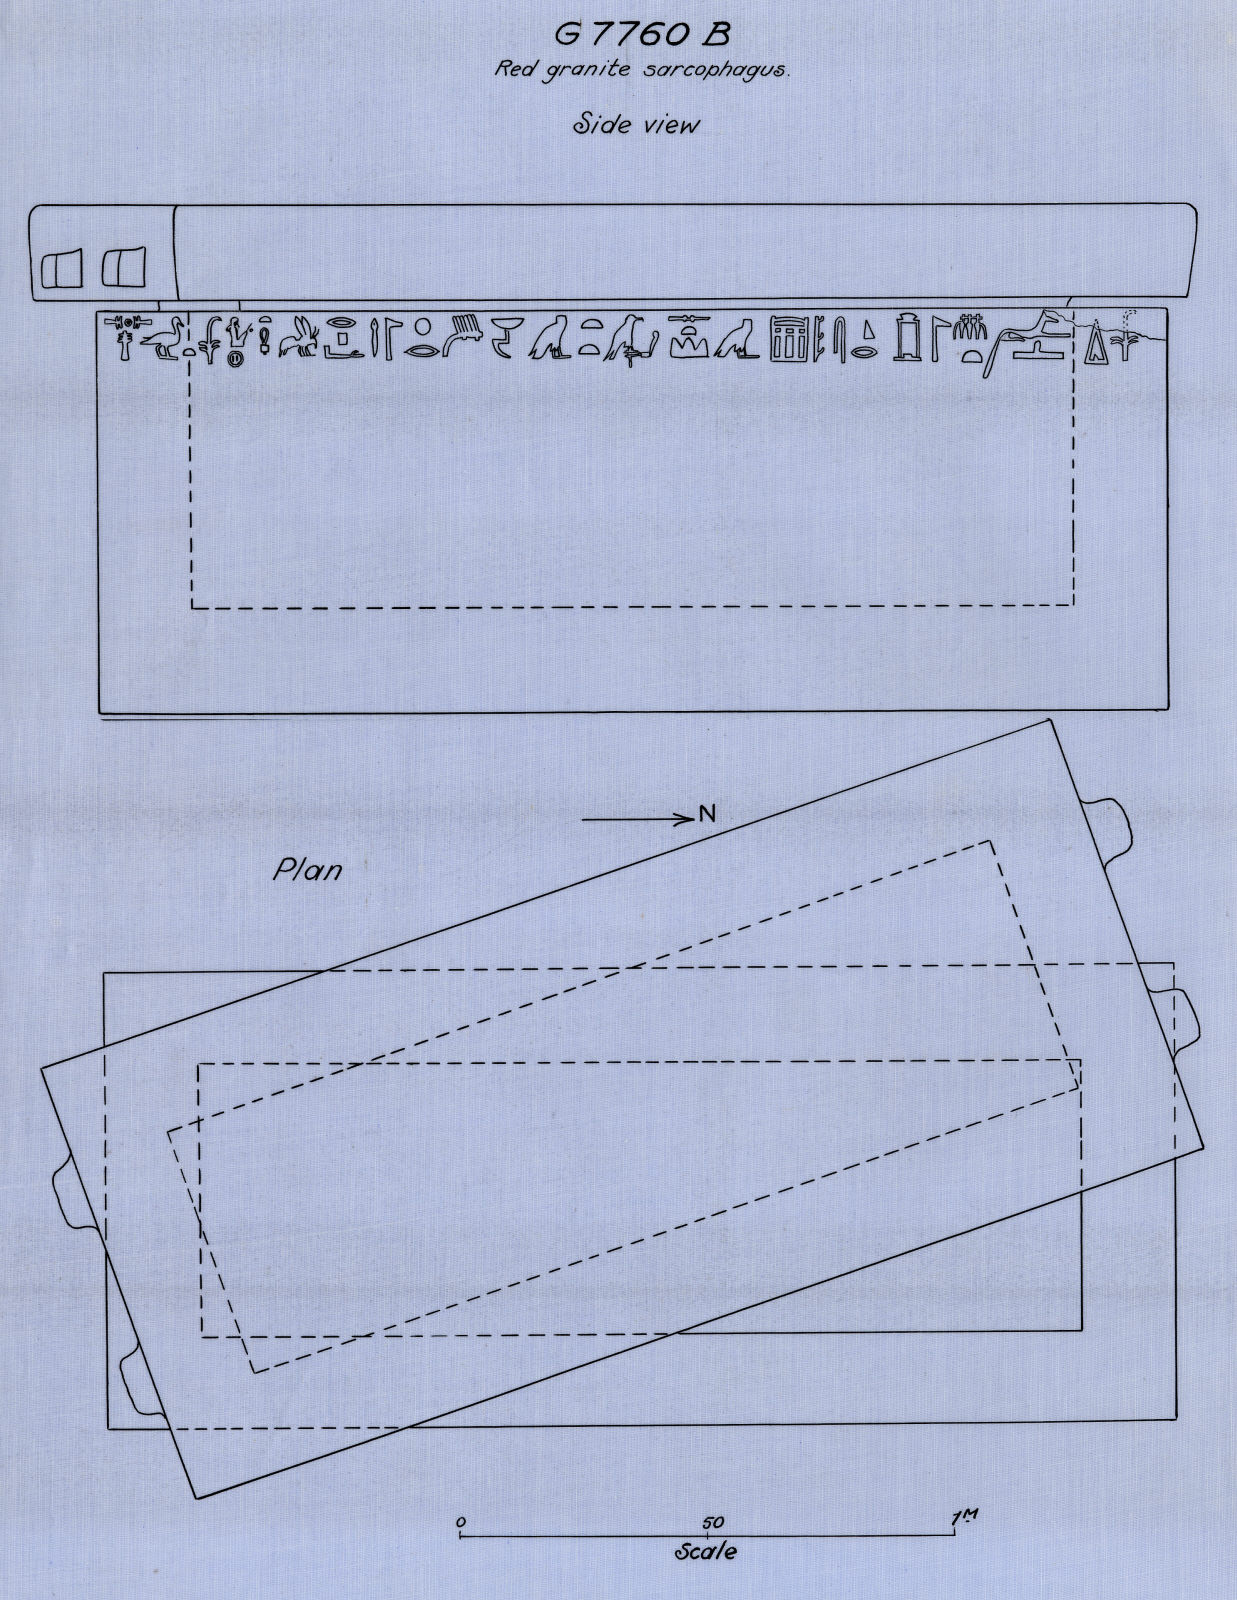 Drawings: G 7760, Shaft B: sarcophagus, red granite, plan and elevation